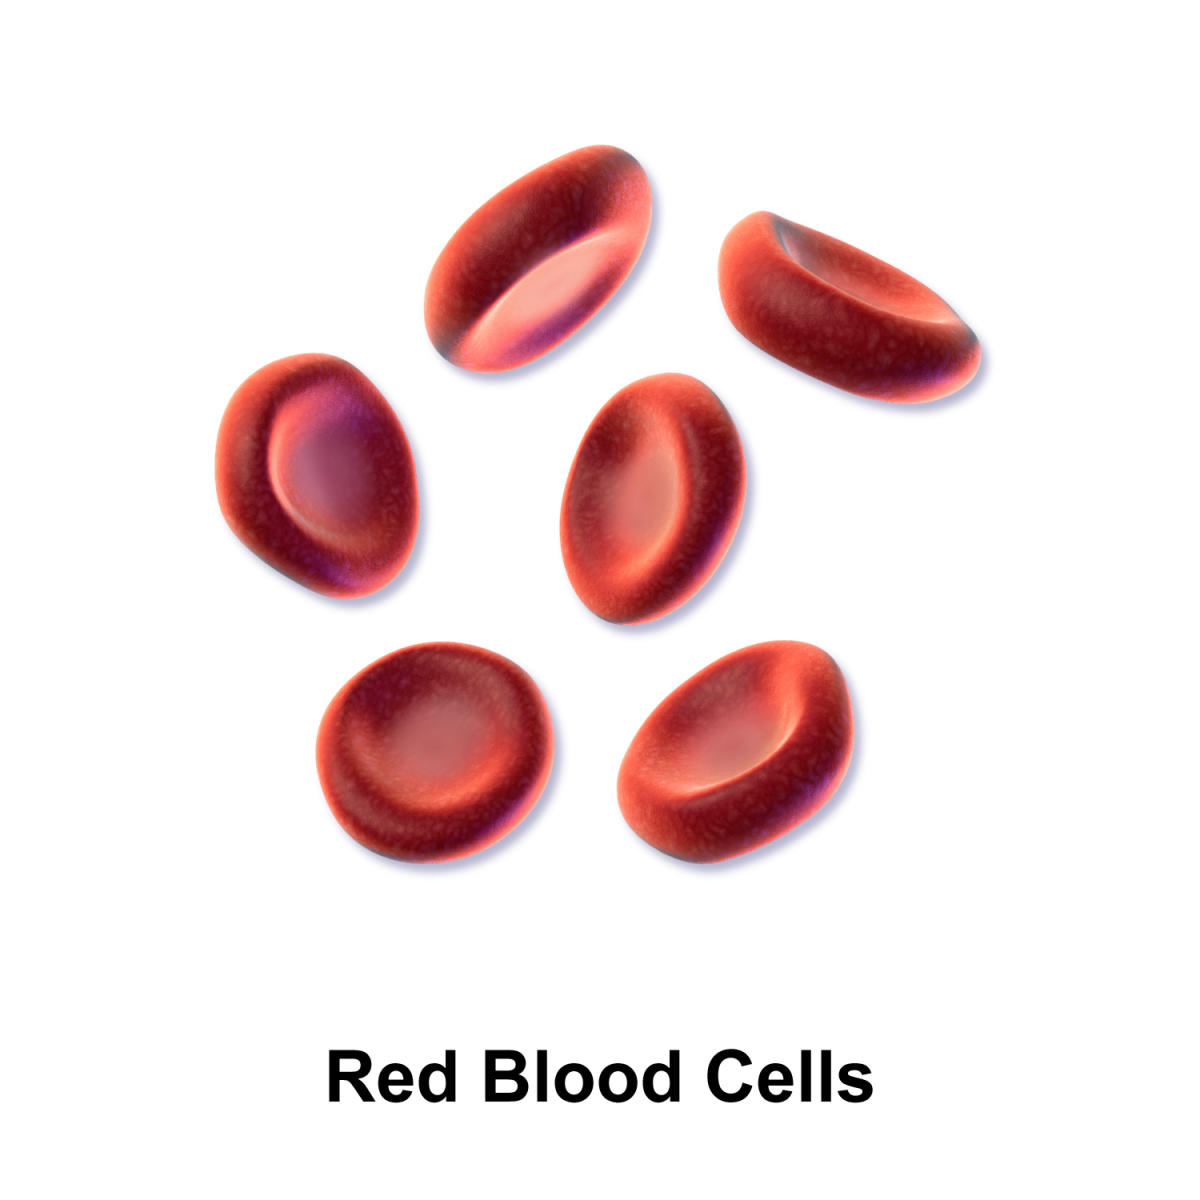 Anemia involves a problem with red blood cells.